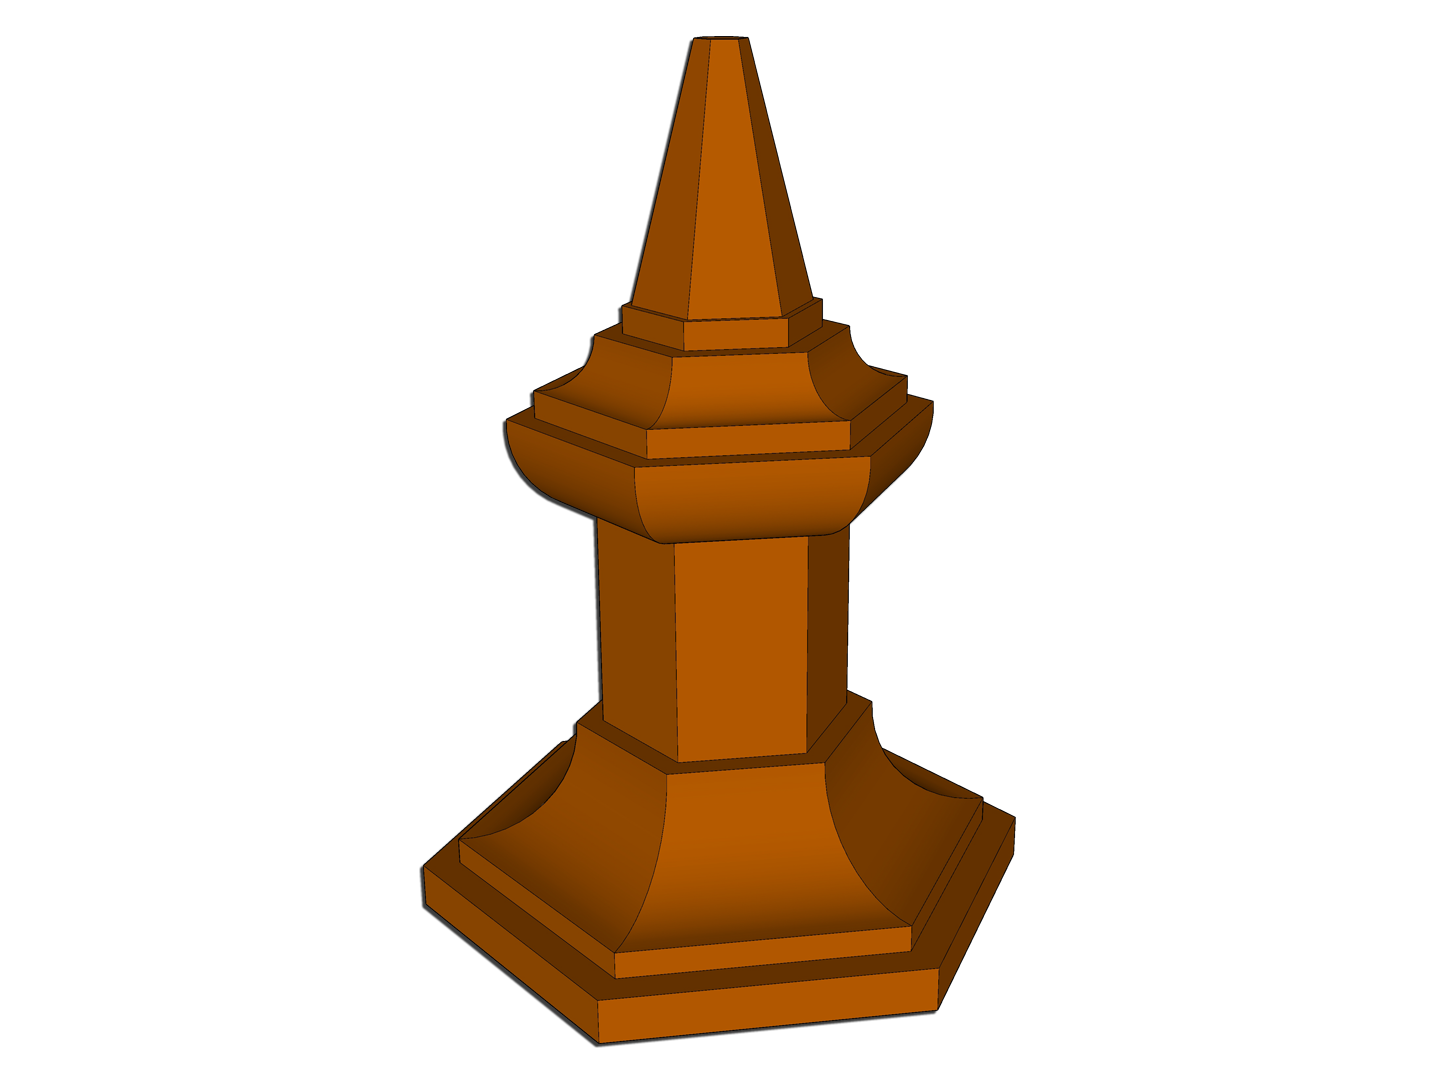 The Royal Finial